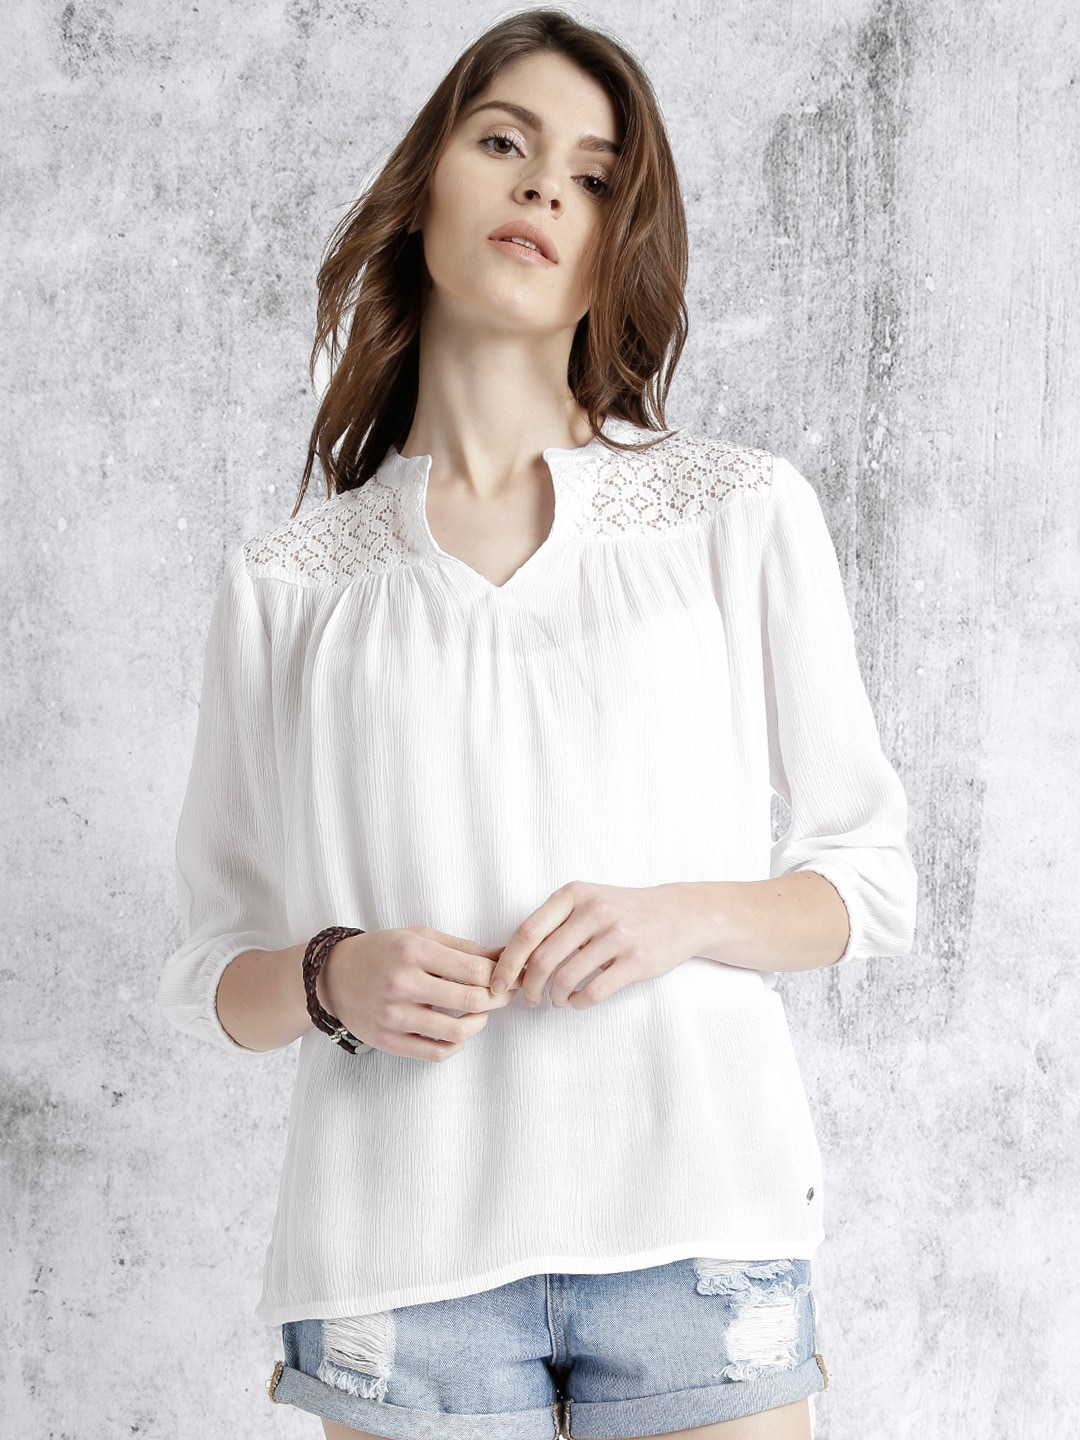 c6e76d3a11dfb0 Lace Tops - Buy Lace Tops for Women   Girls Online in India